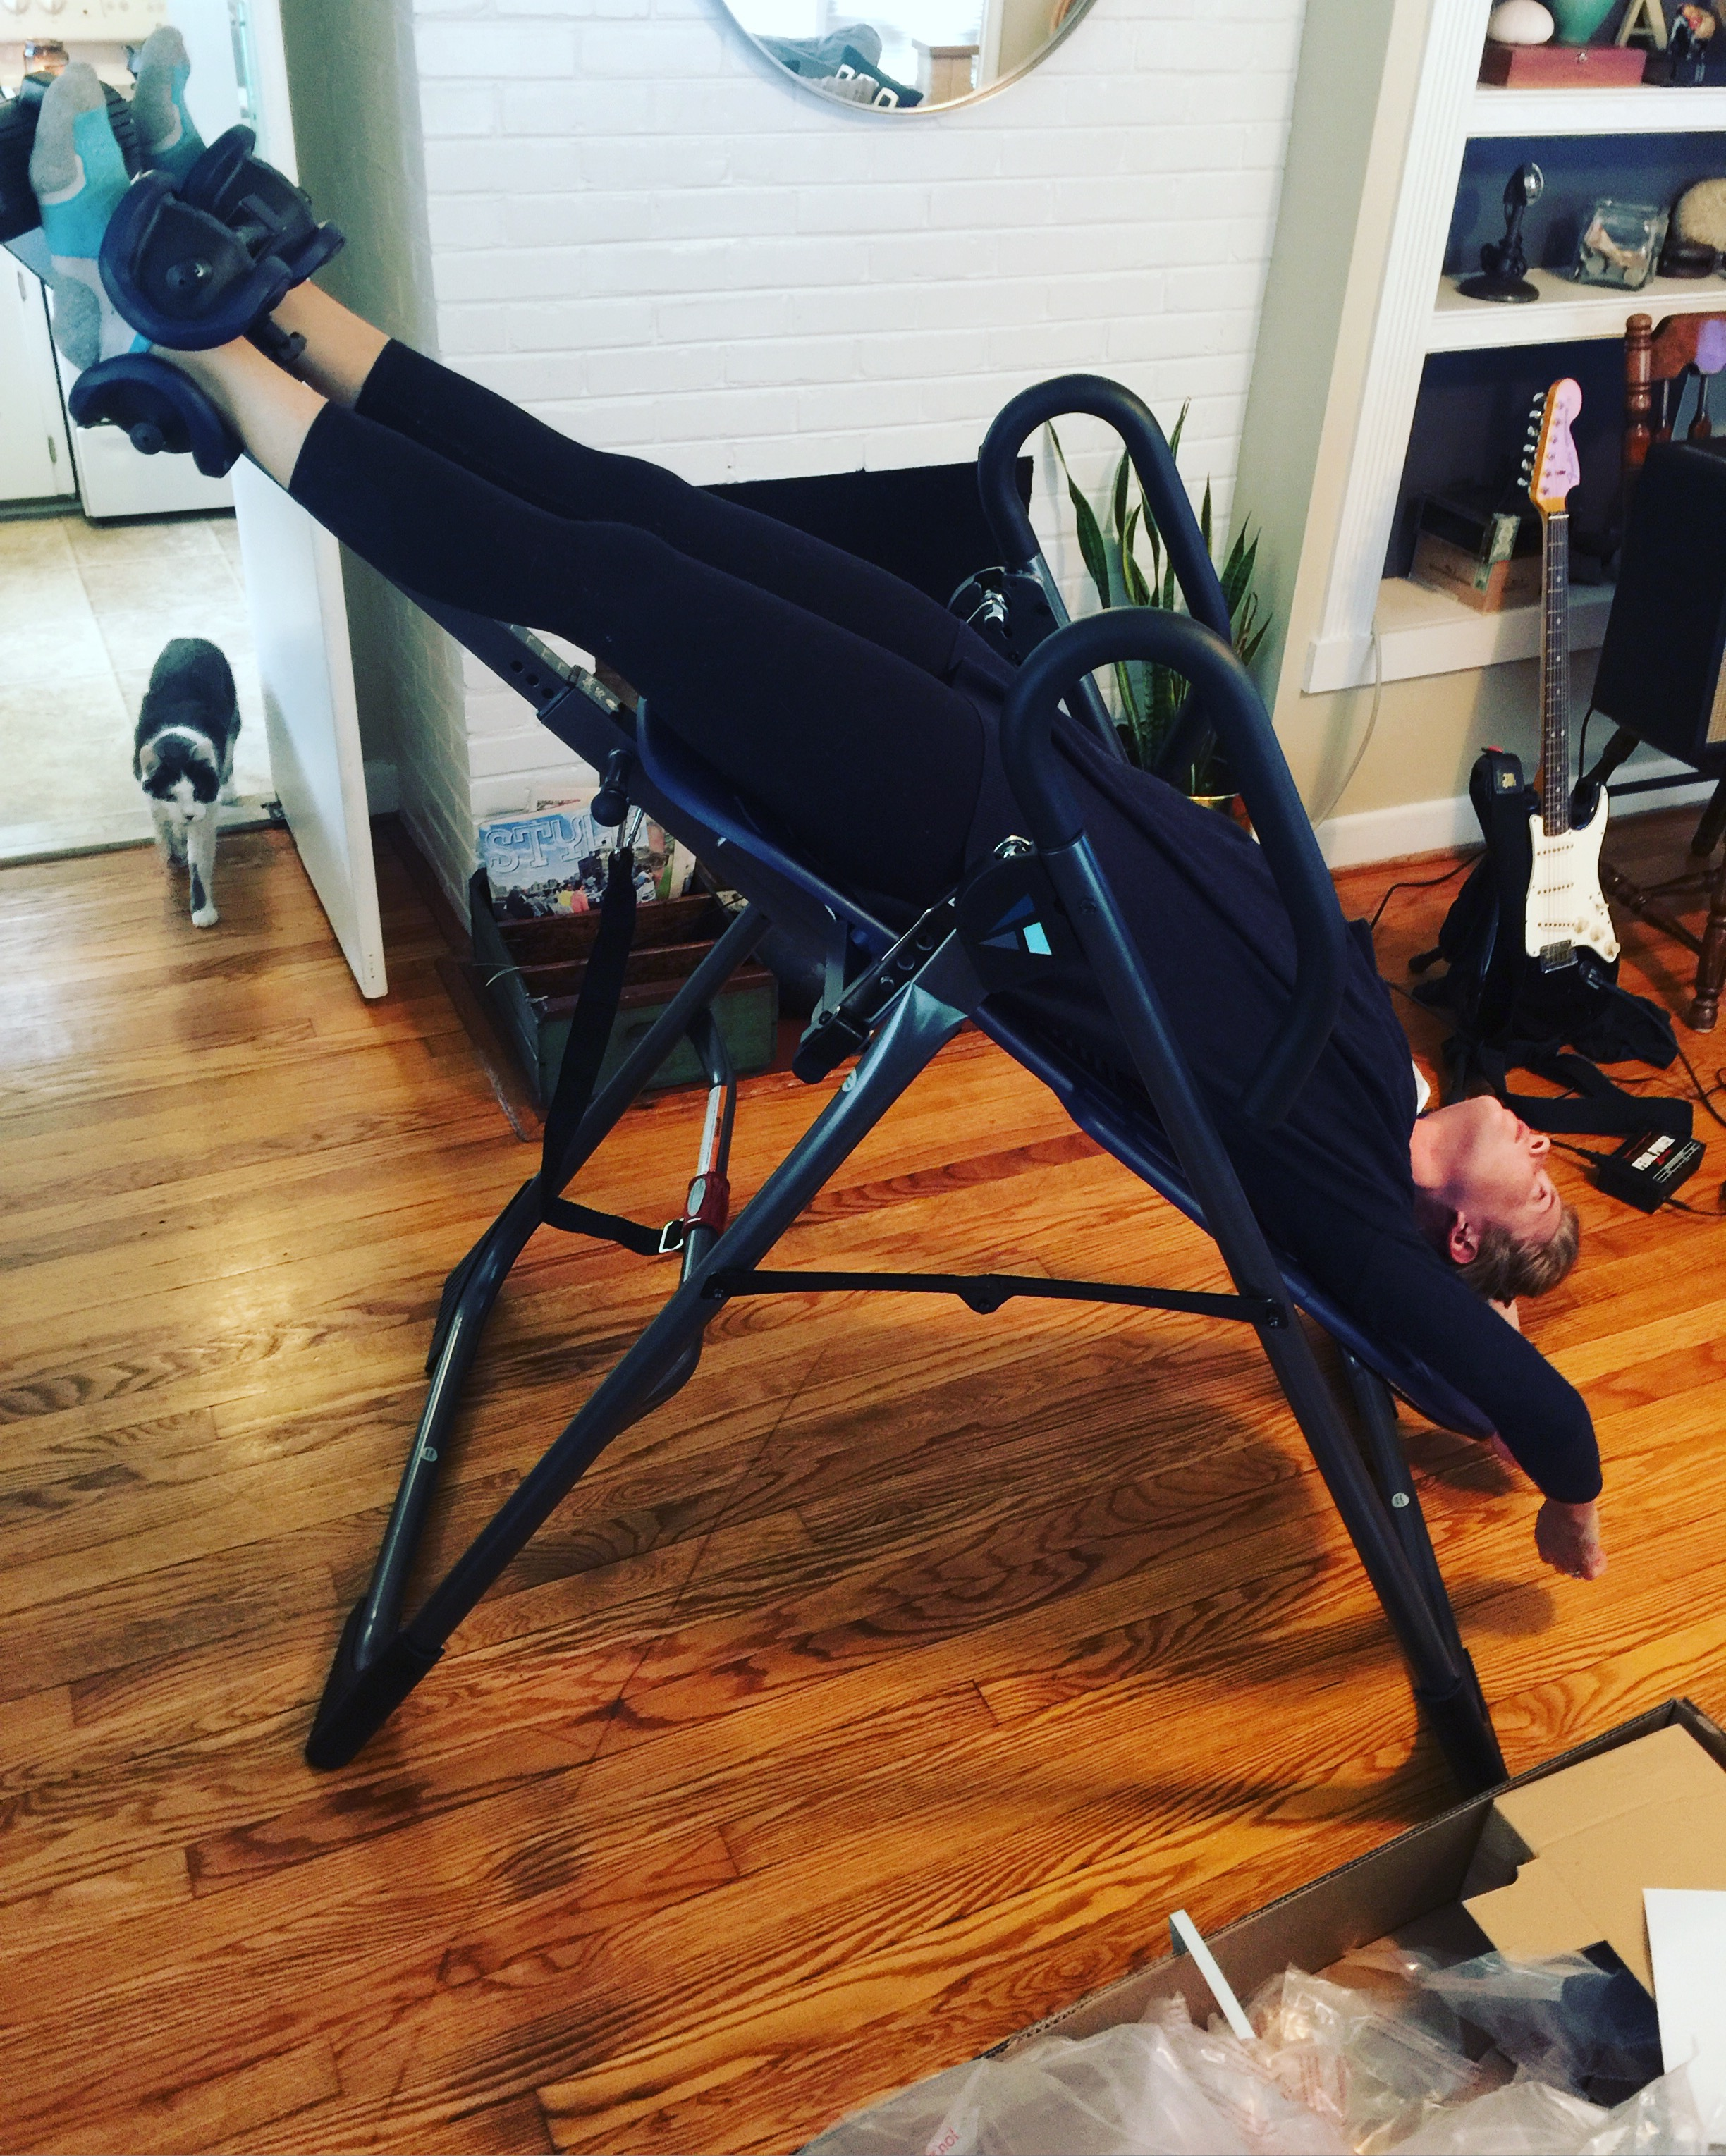 So we also bought this inversion table and I'm loving it!